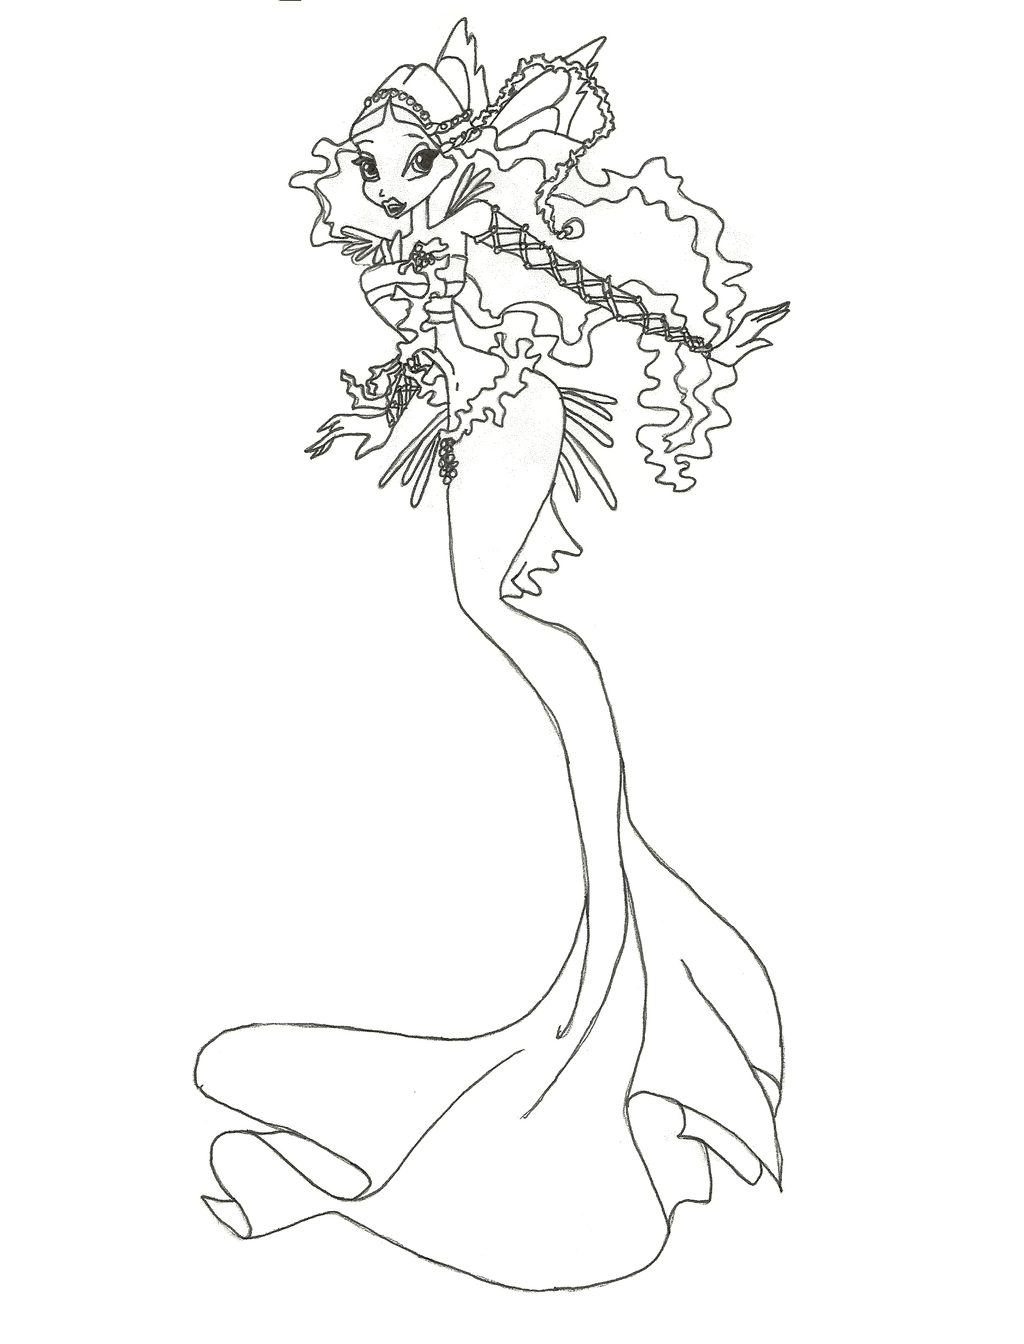 Mermaid Coloring Mermaid Coloring Book Mermaid Coloring Pages [ 1344 x 1024 Pixel ]